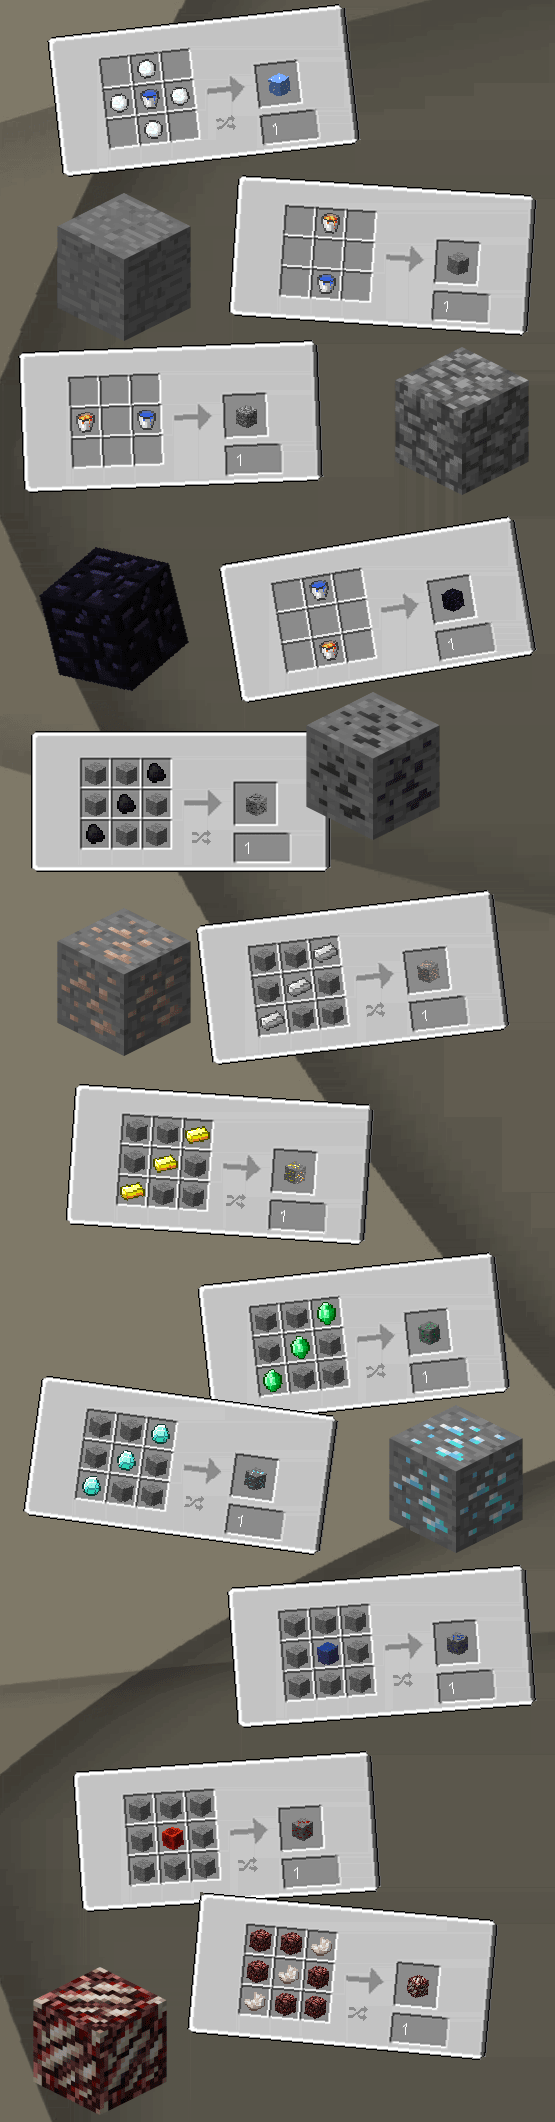 Uncrafted [1.12.2] [1.12.1] [1.11.2] [1.10.2] [1.9.4] [1.8.9] [1.7.10]